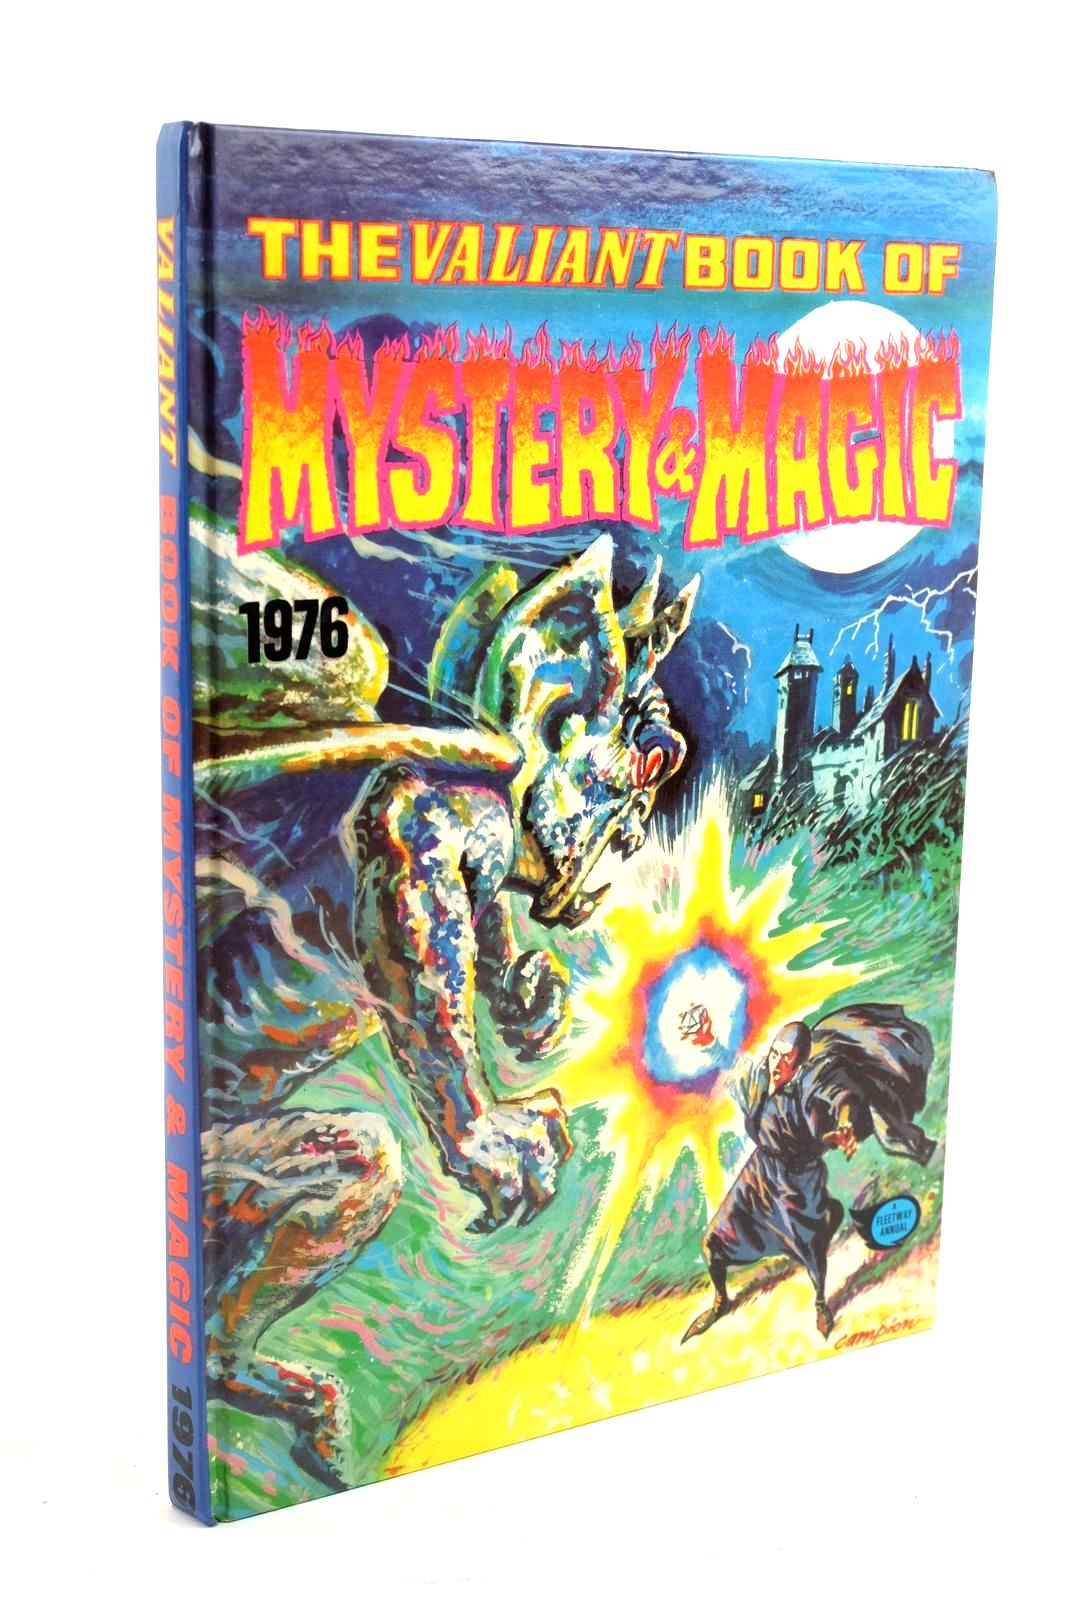 Photo of THE VALIANT BOOK OF MYSTERY & MAGIC 1976 published by IPC Magazines Ltd. (STOCK CODE: 1320998)  for sale by Stella & Rose's Books